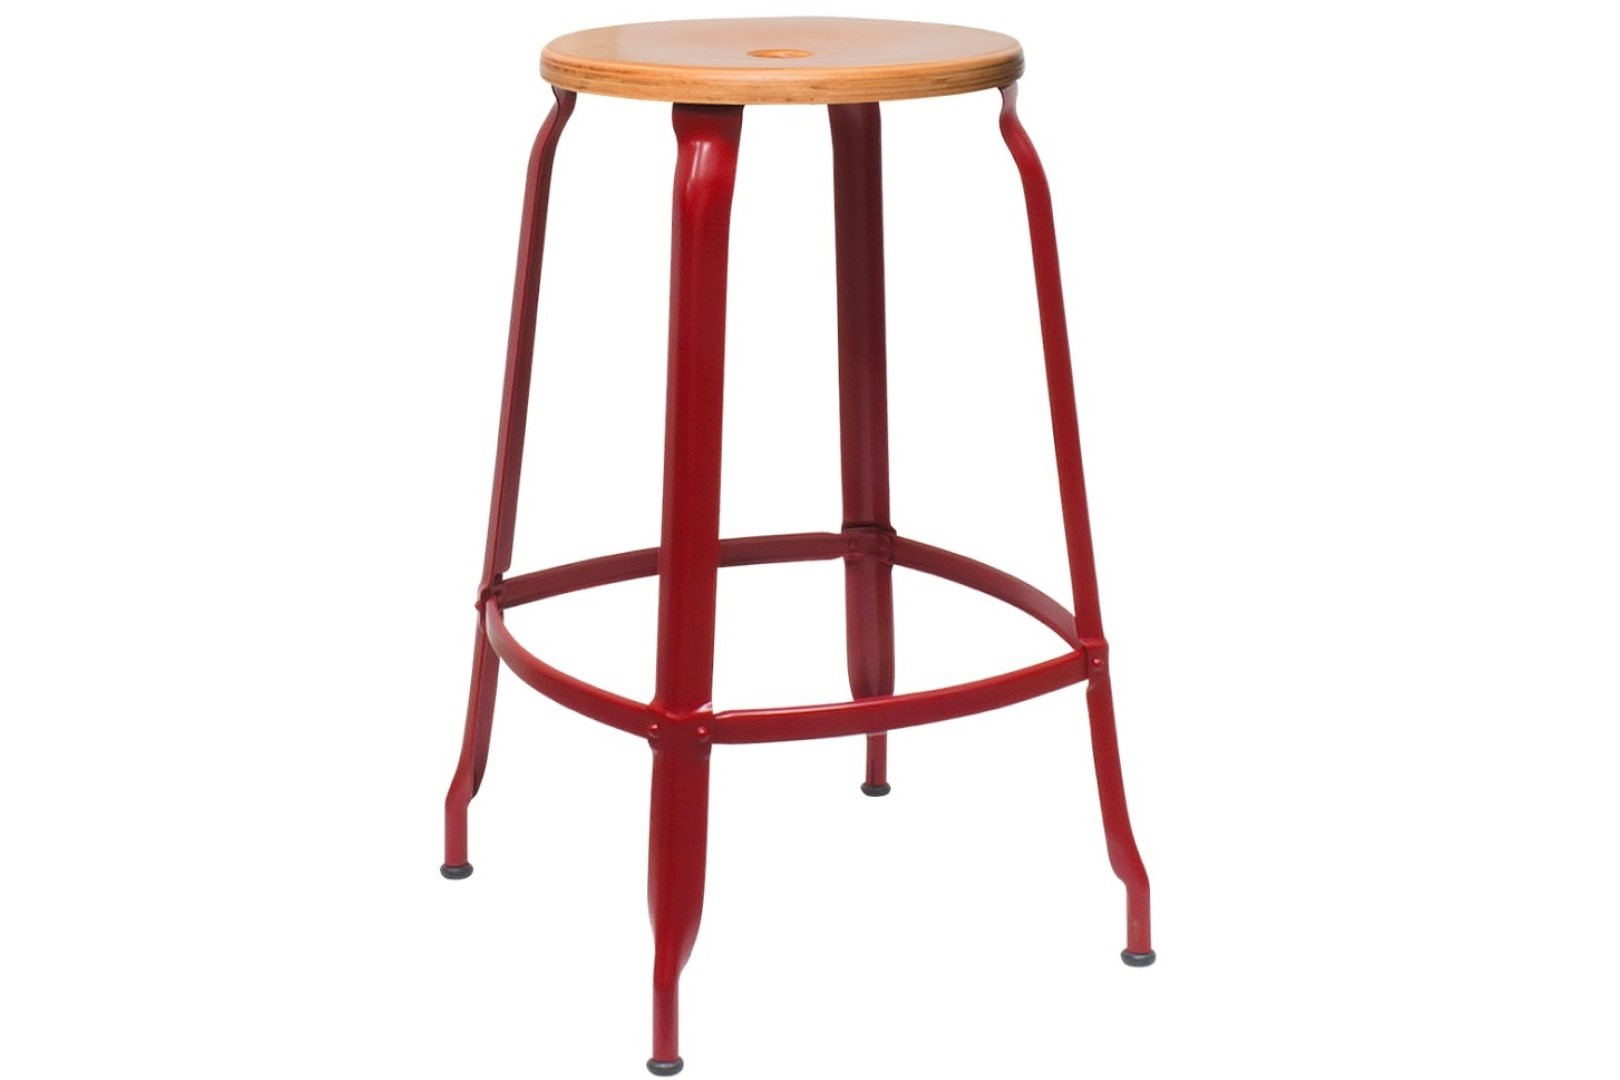 Stool 60 - Metal and Wood - Red Brown and Natural